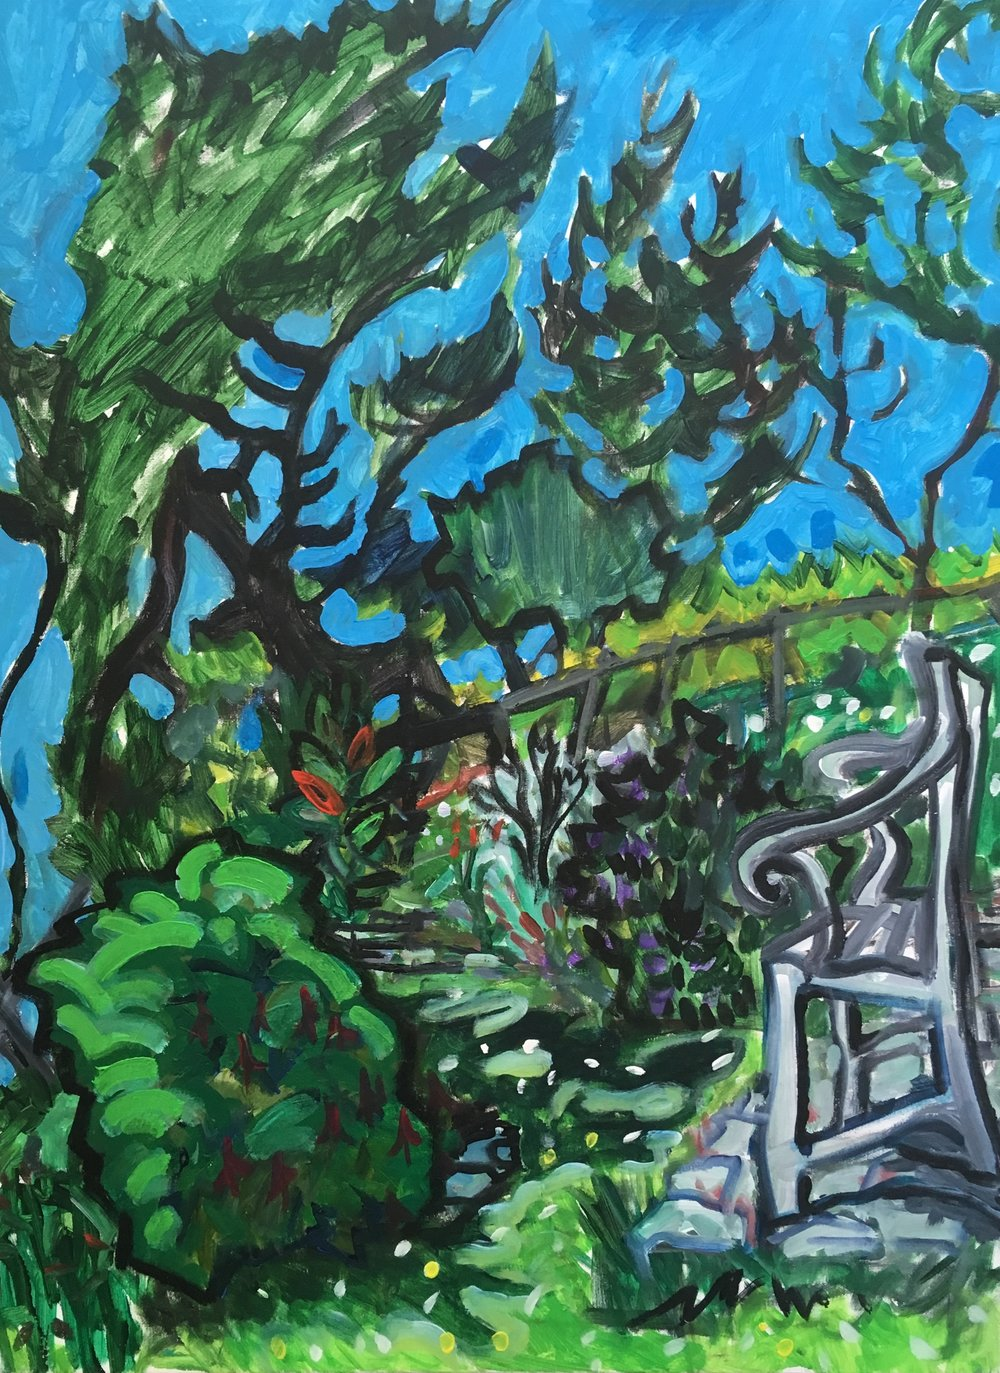 chair by the cliff, Devon  acrylic on canvas  60 by 80 by 1.5 cm  £750  unframed